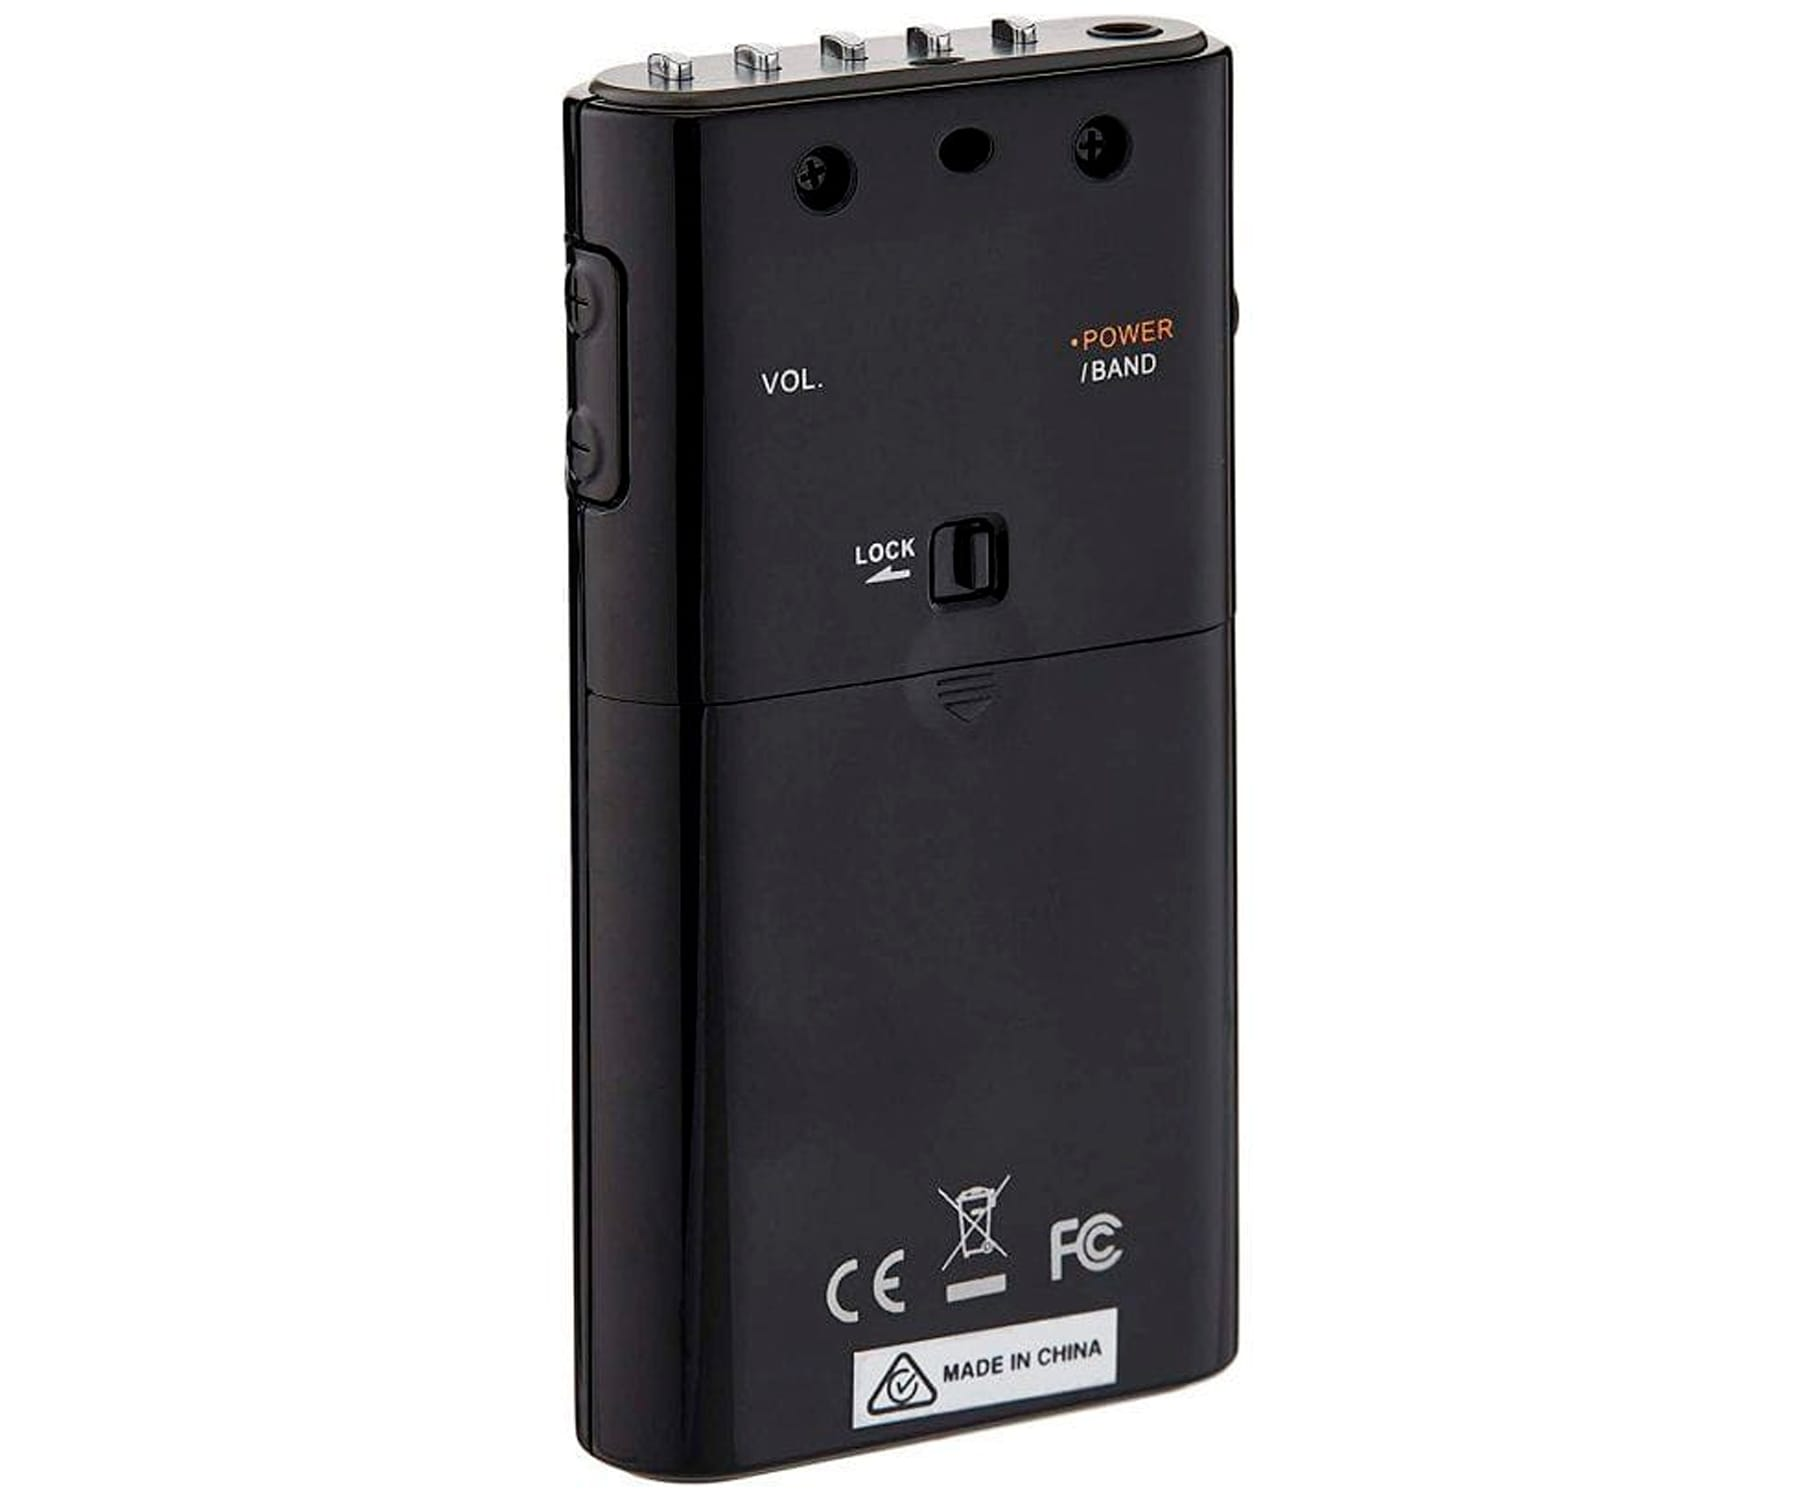 SANGEAN MPR-100 BLACK RADIO DIGITAL  DE BOLSILLO AM/FM 15 PRESINTONIAS